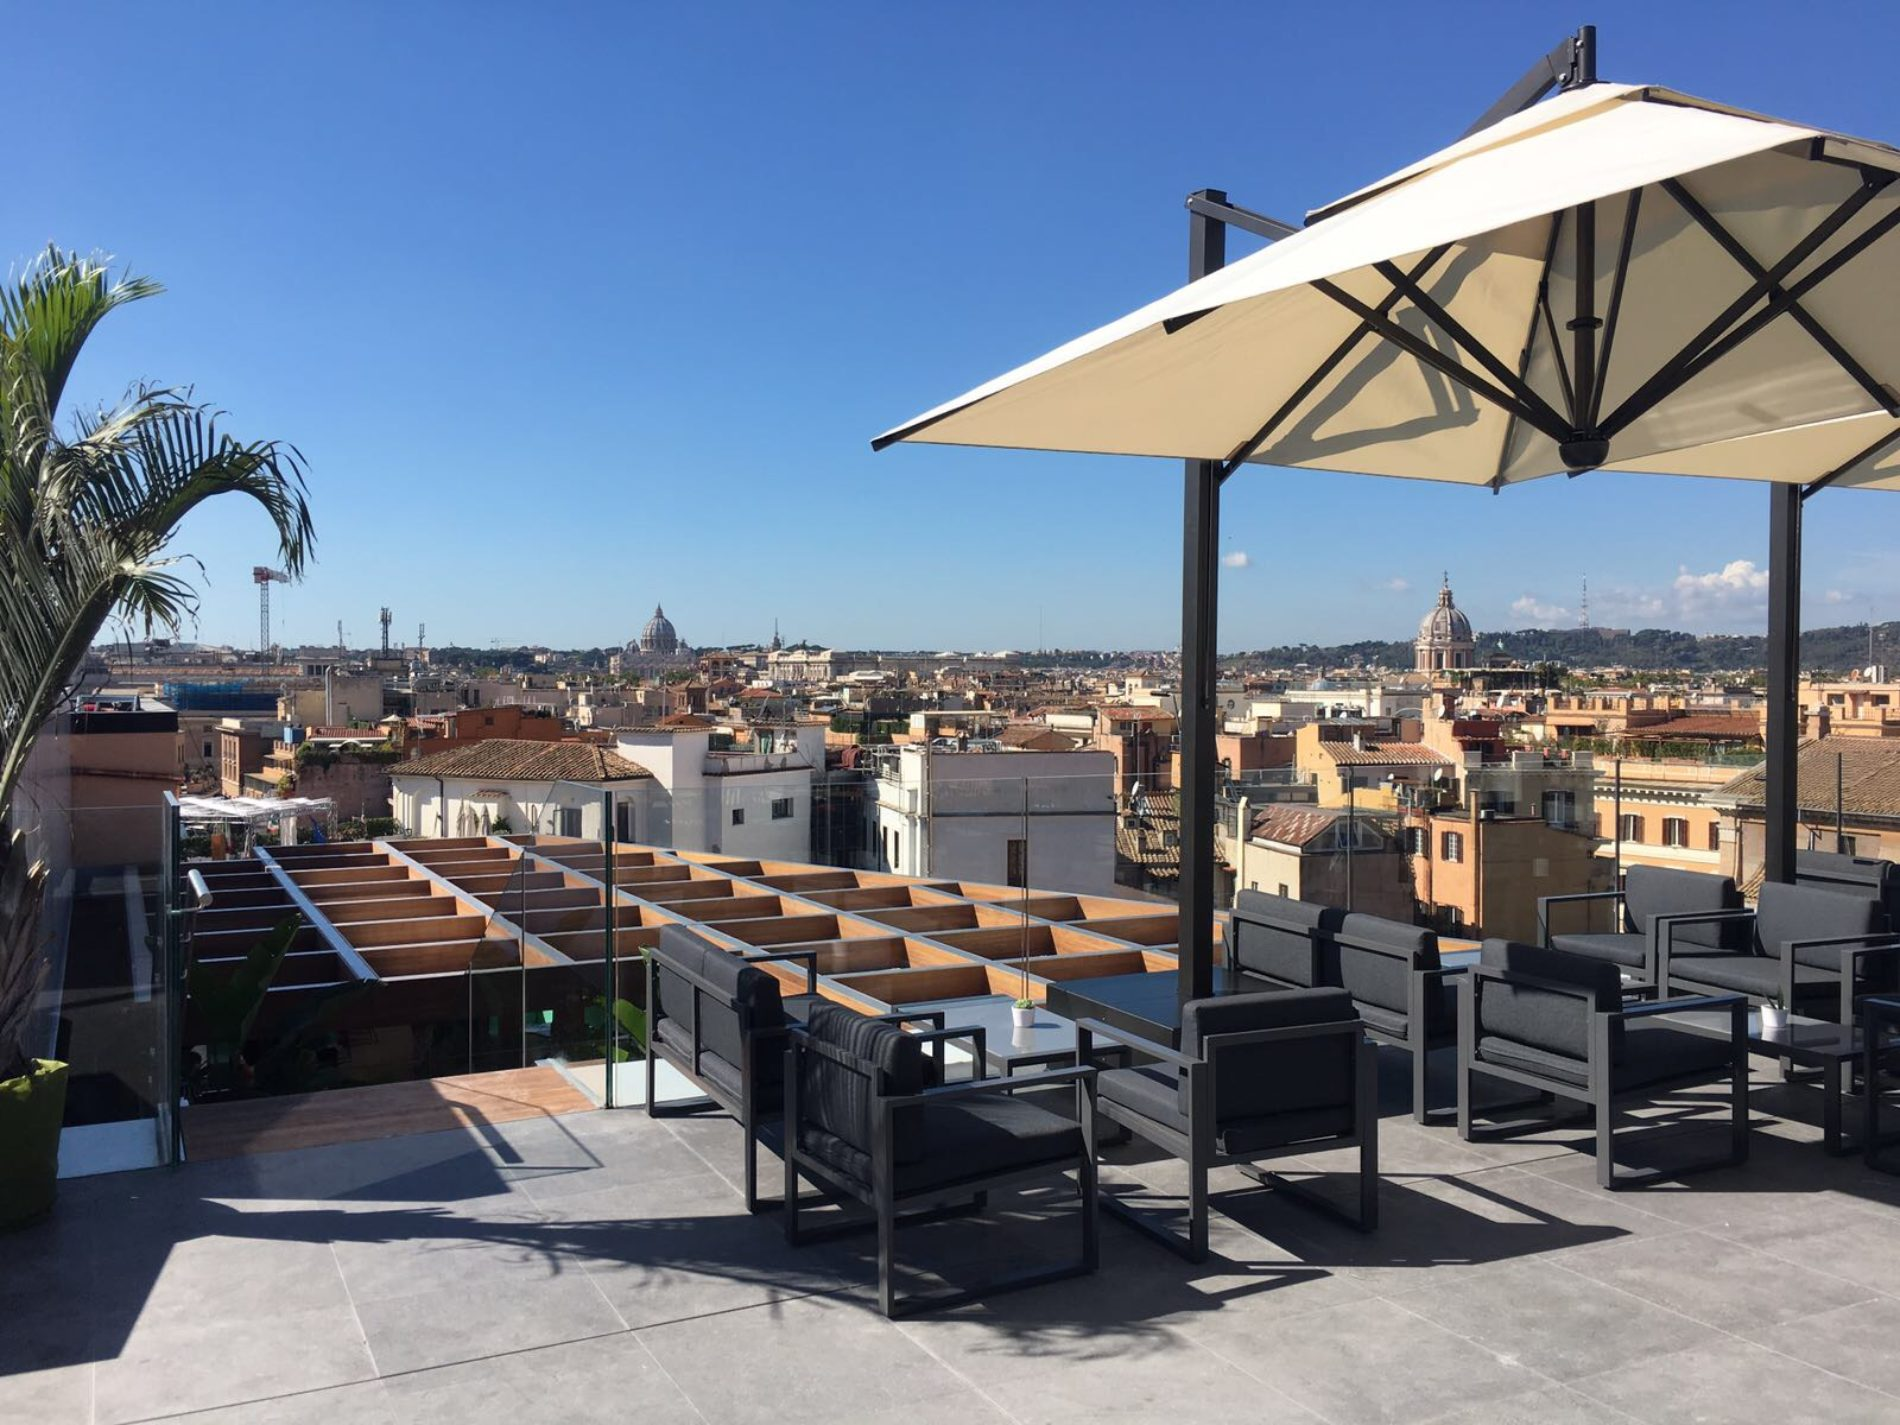 Rinascente roma madeiterraneo restaurant e up sunset bar for Inaugurazione rinascente roma